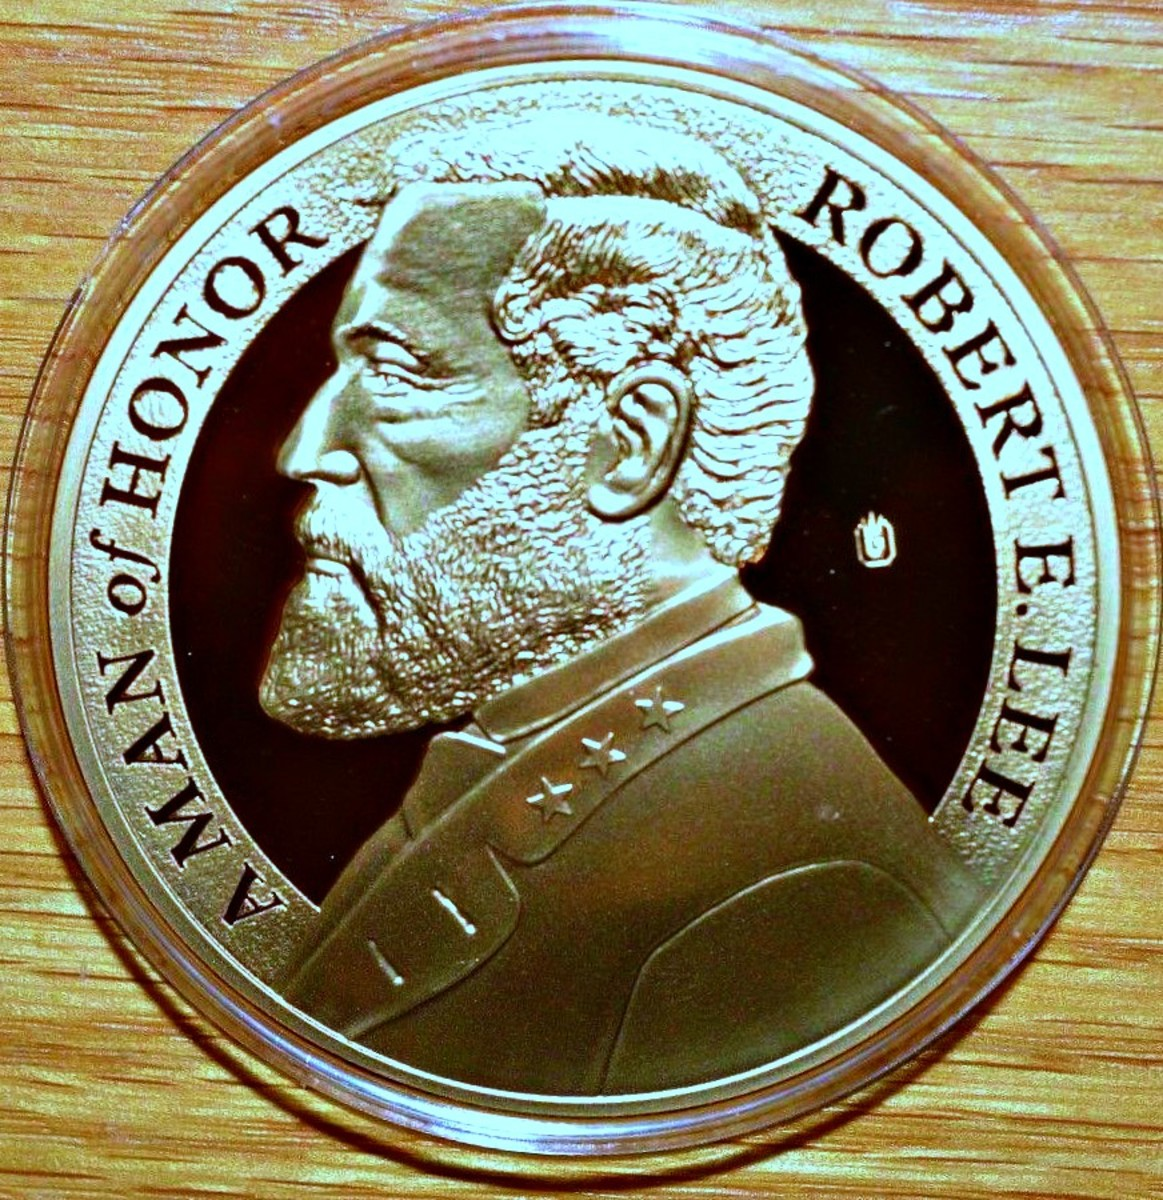 The 2011 Proof of General Robert E. Lee, this is a  Career Army Officer Commemorative Coin. Robert E. Lee was a career Army officer and among the most celebrated generals in American history. He turned down Lincoln's offer to command the Union.